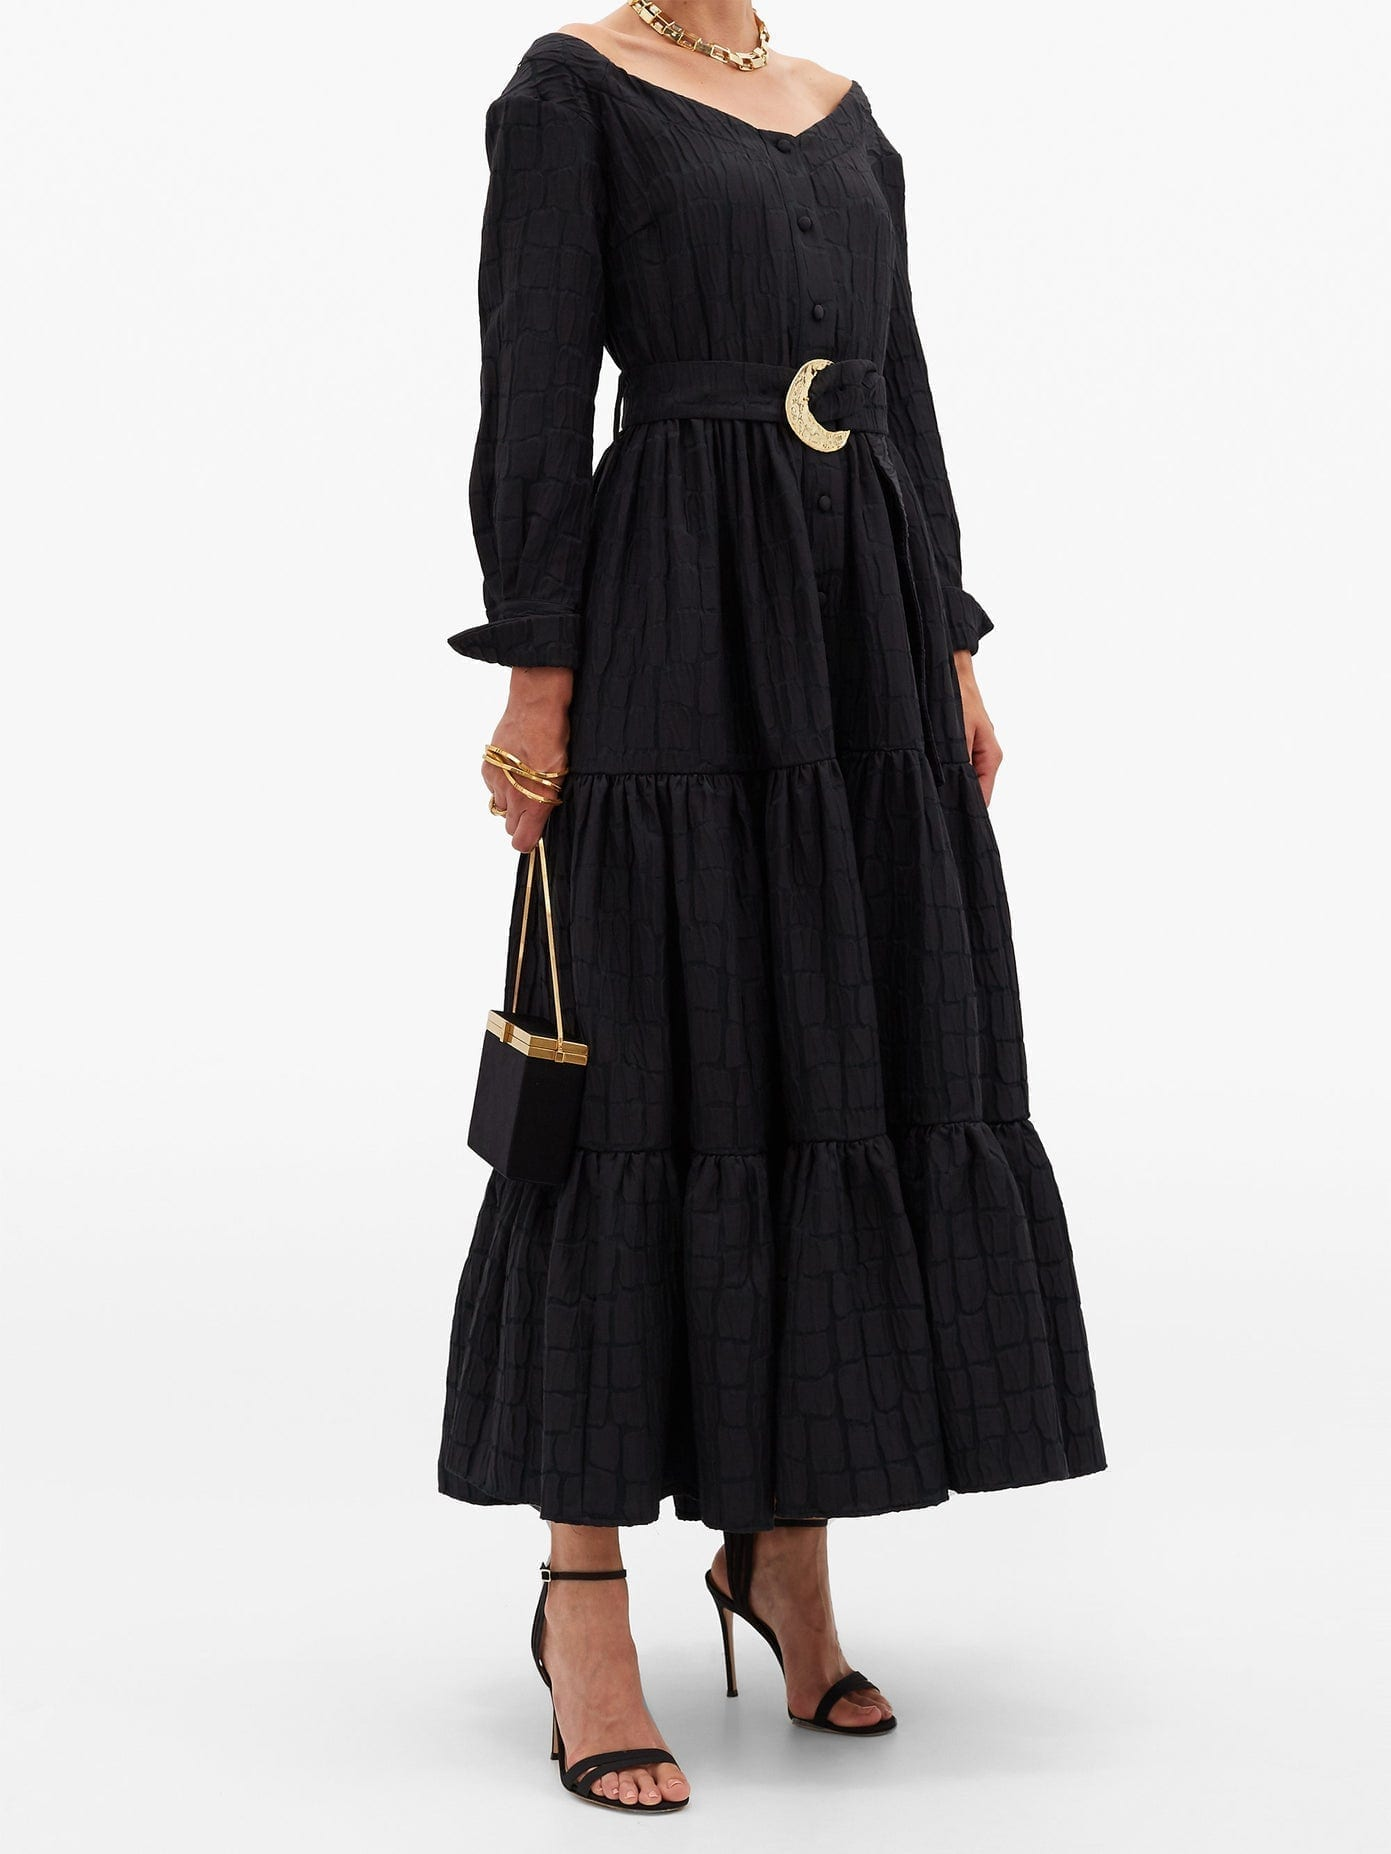 TALLER MARMO Margherita Belted Jacquard Midi Dress